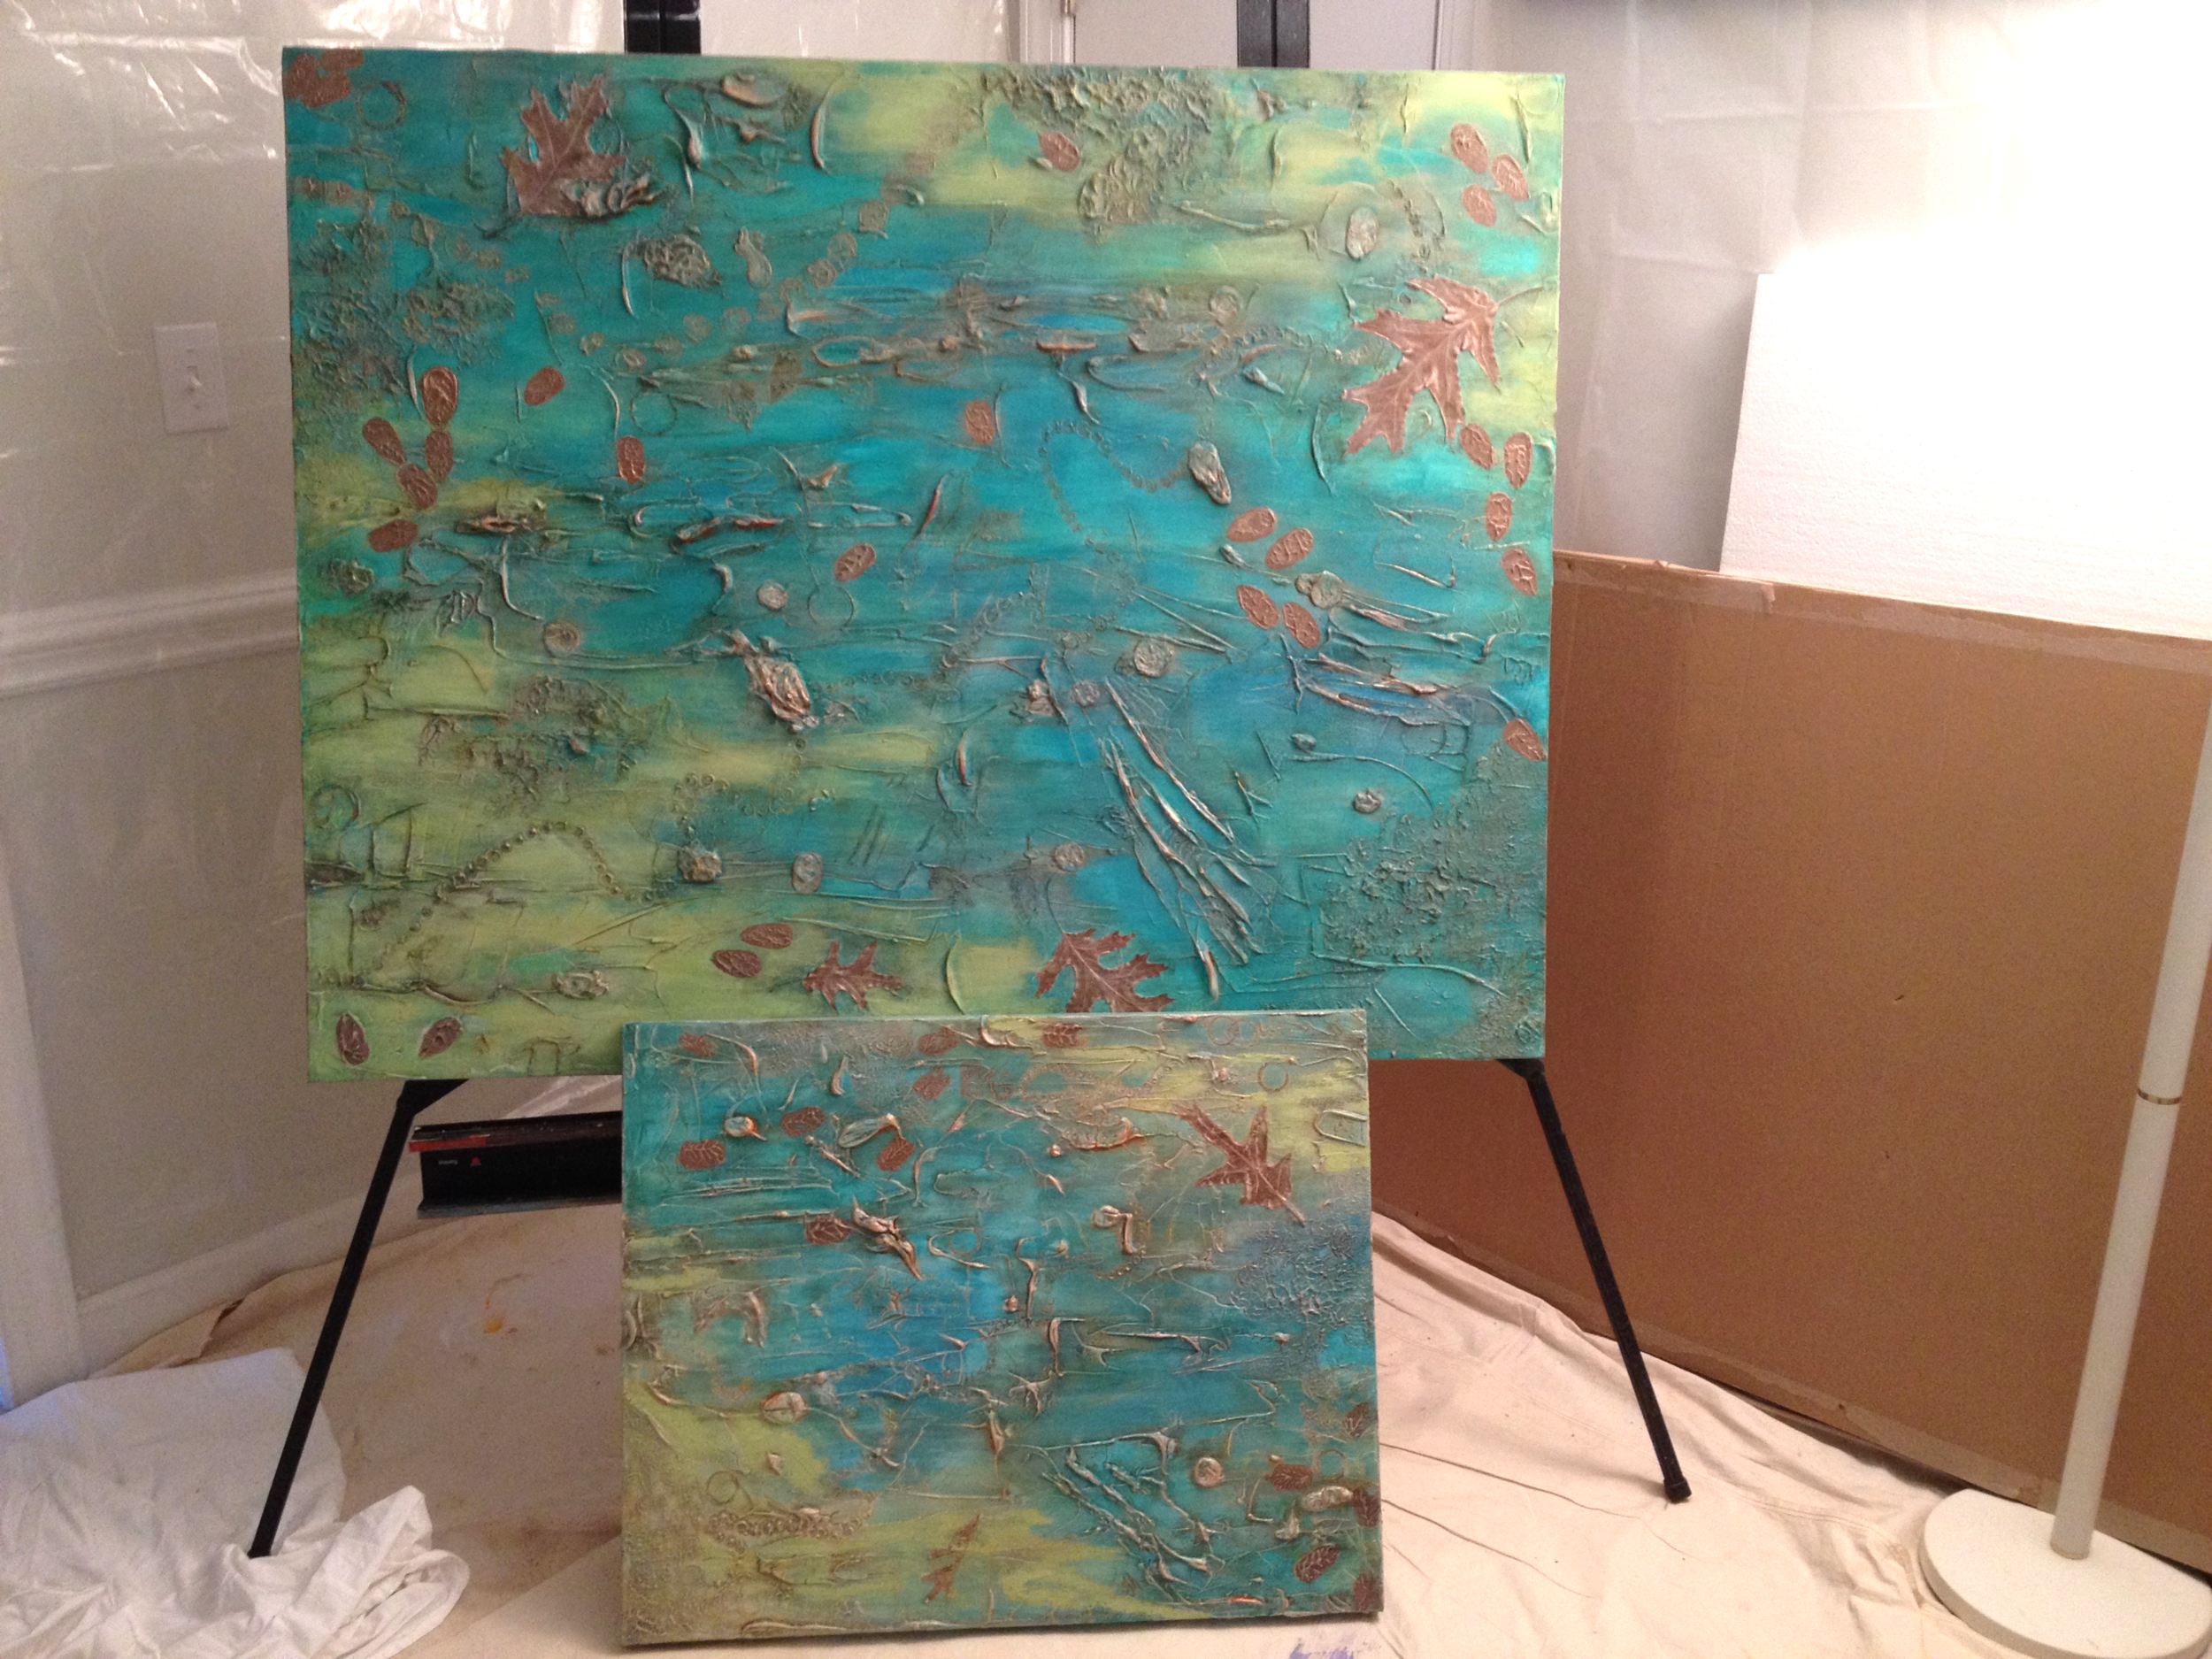 RIVER OF HOPE II commissioned painting on top andRIVER OF HOPE original abstract on bottom.